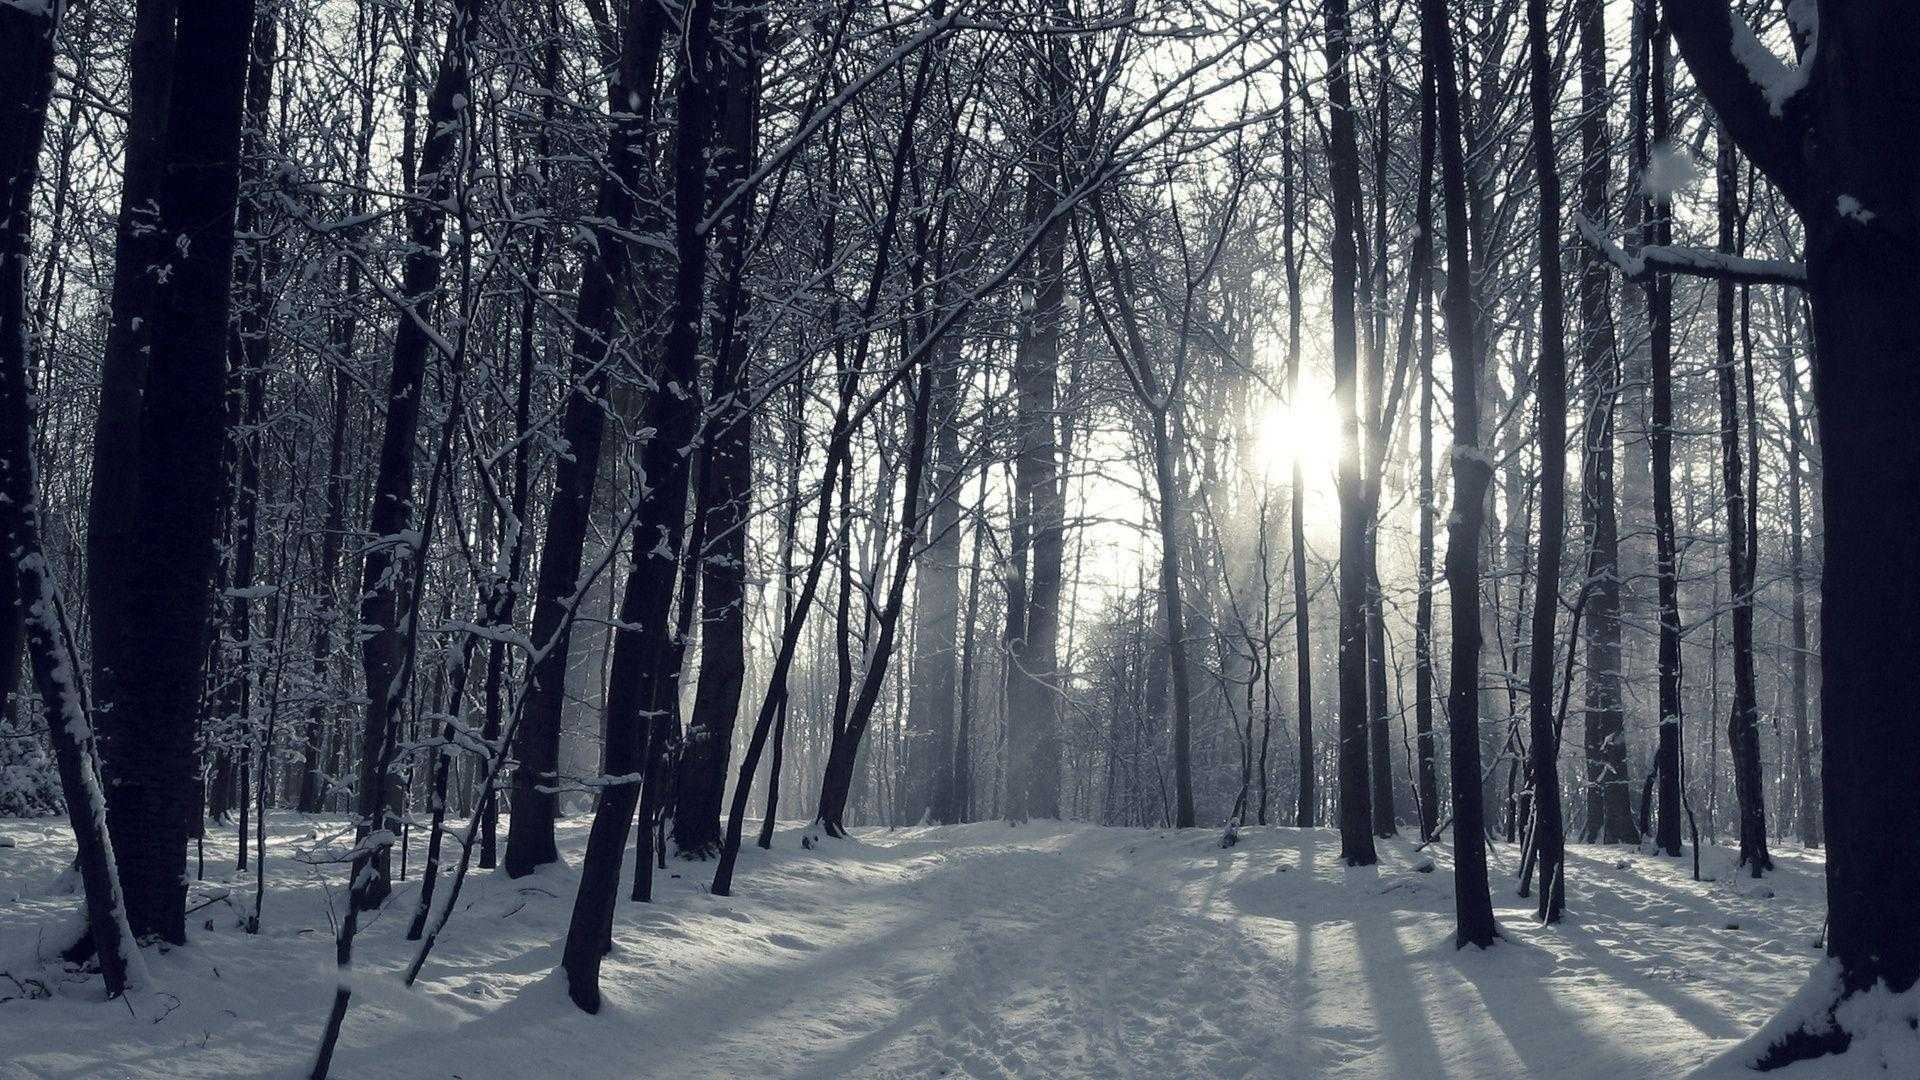 winter forest wallpaper hd high quality snowy for androids | wallvie